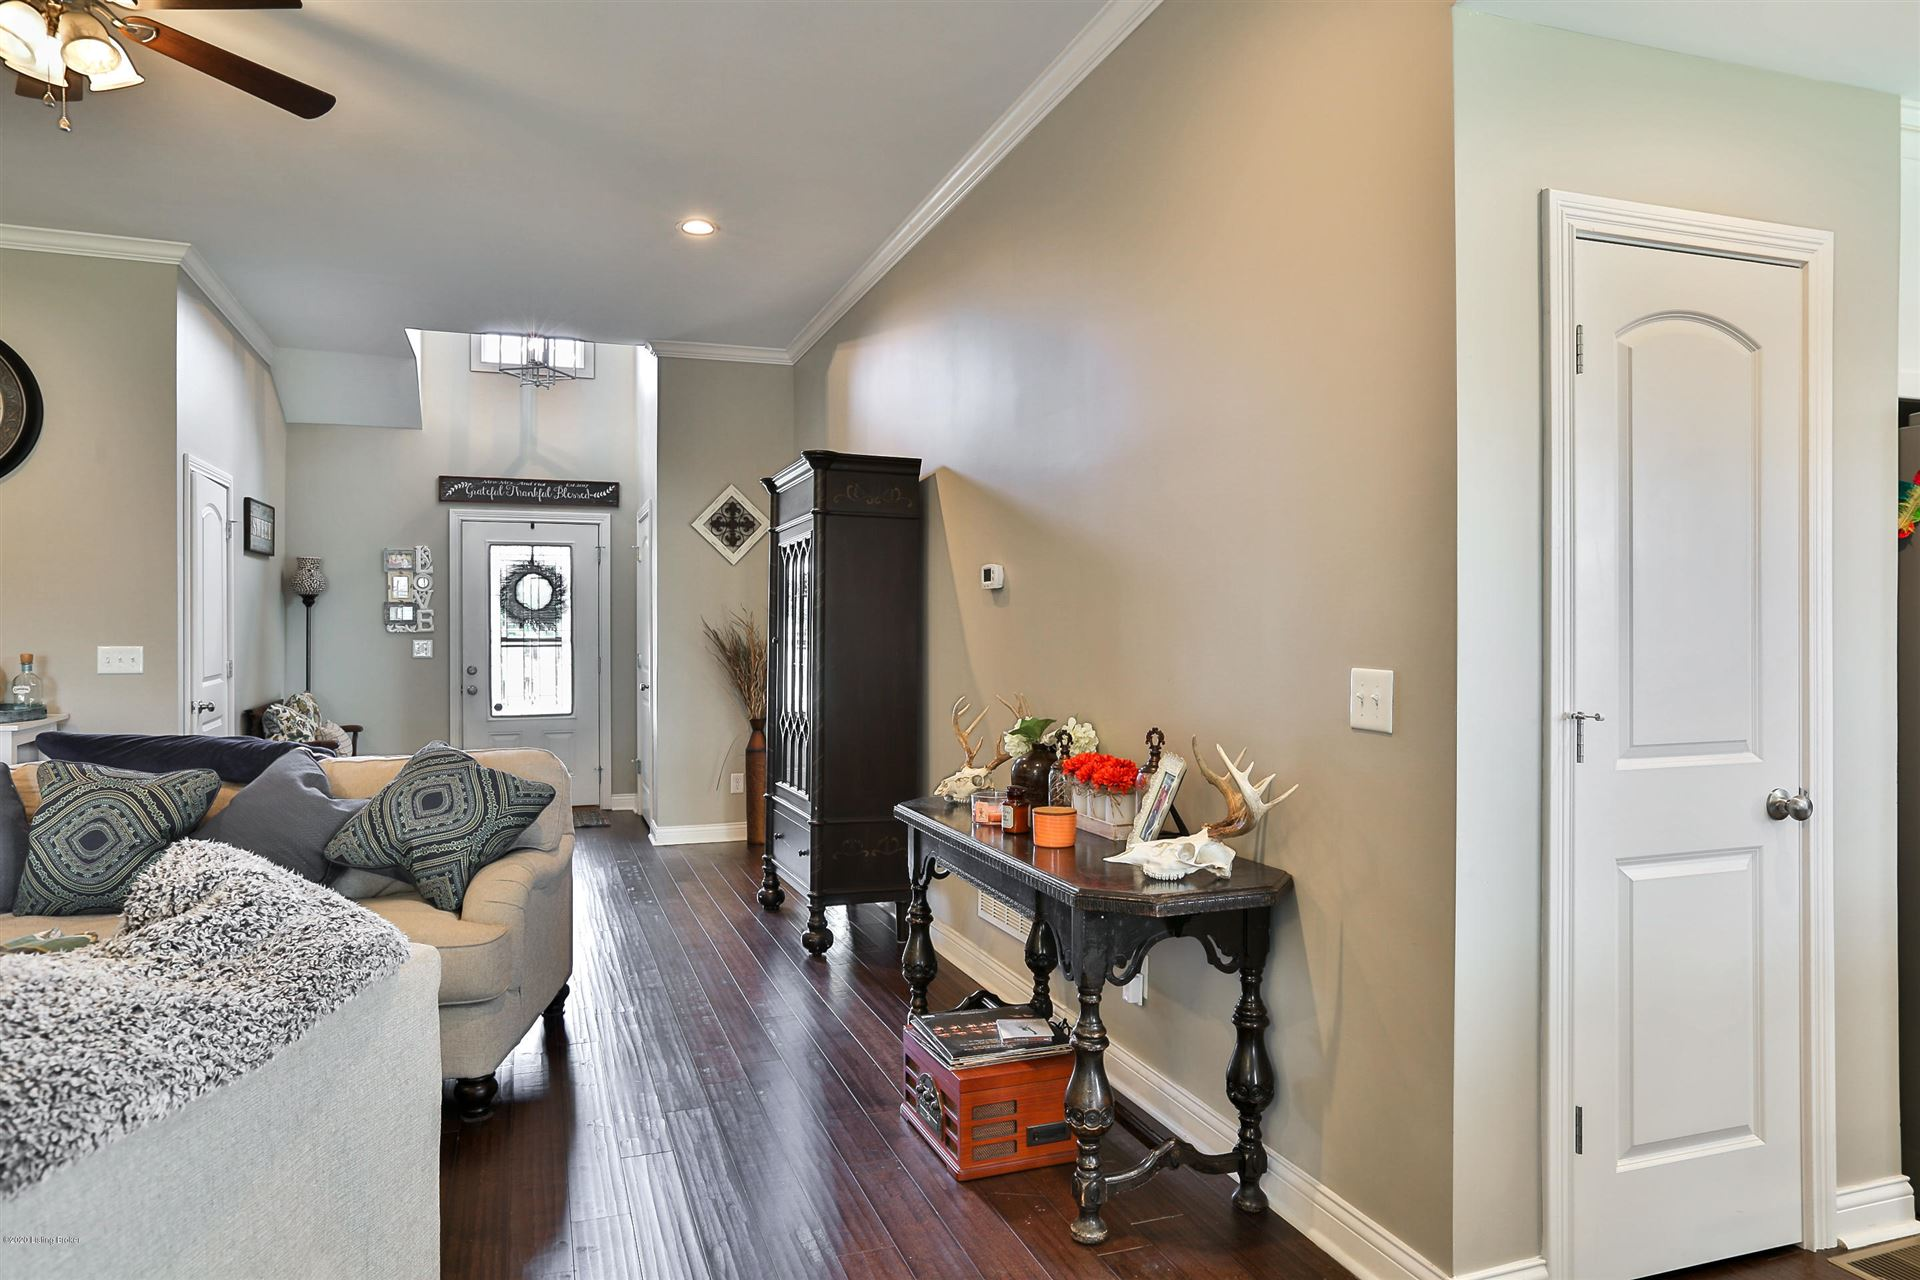 Property Image Of 24 Parkers Cove In Taylorsville, Ky